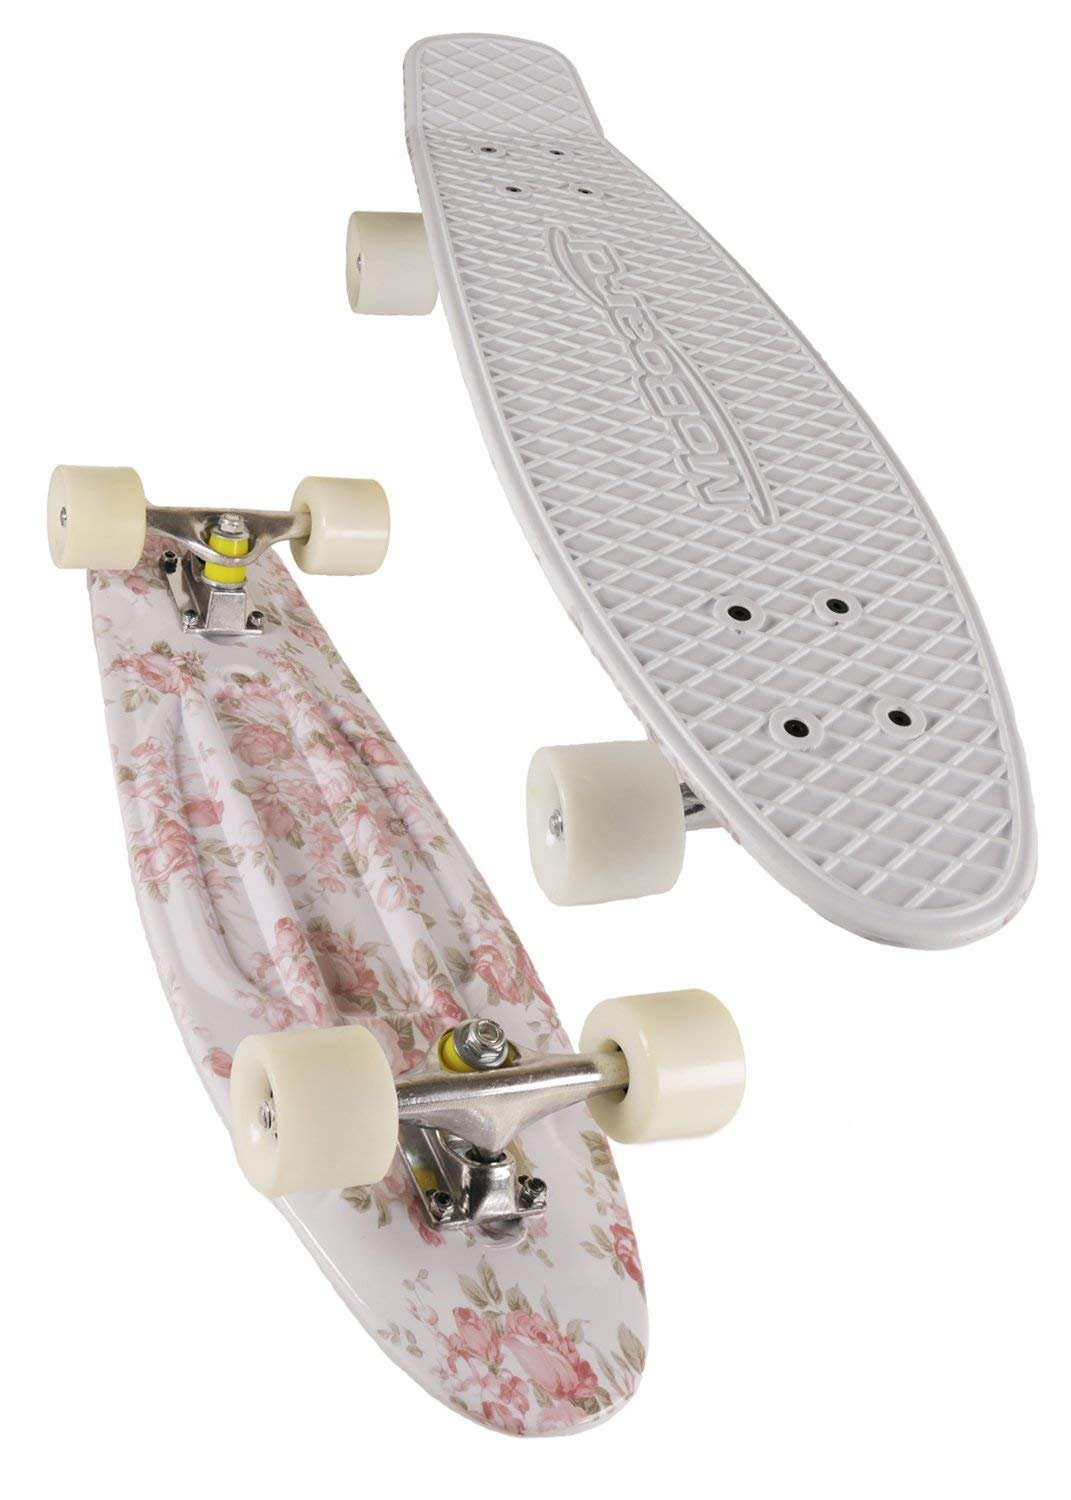 MoBoard Graphic Complete Skateboard   Pro/Beginner   22 inch Vintage Style with Interchangeable Wheels (Pink/Graphic - Lt Blue)  